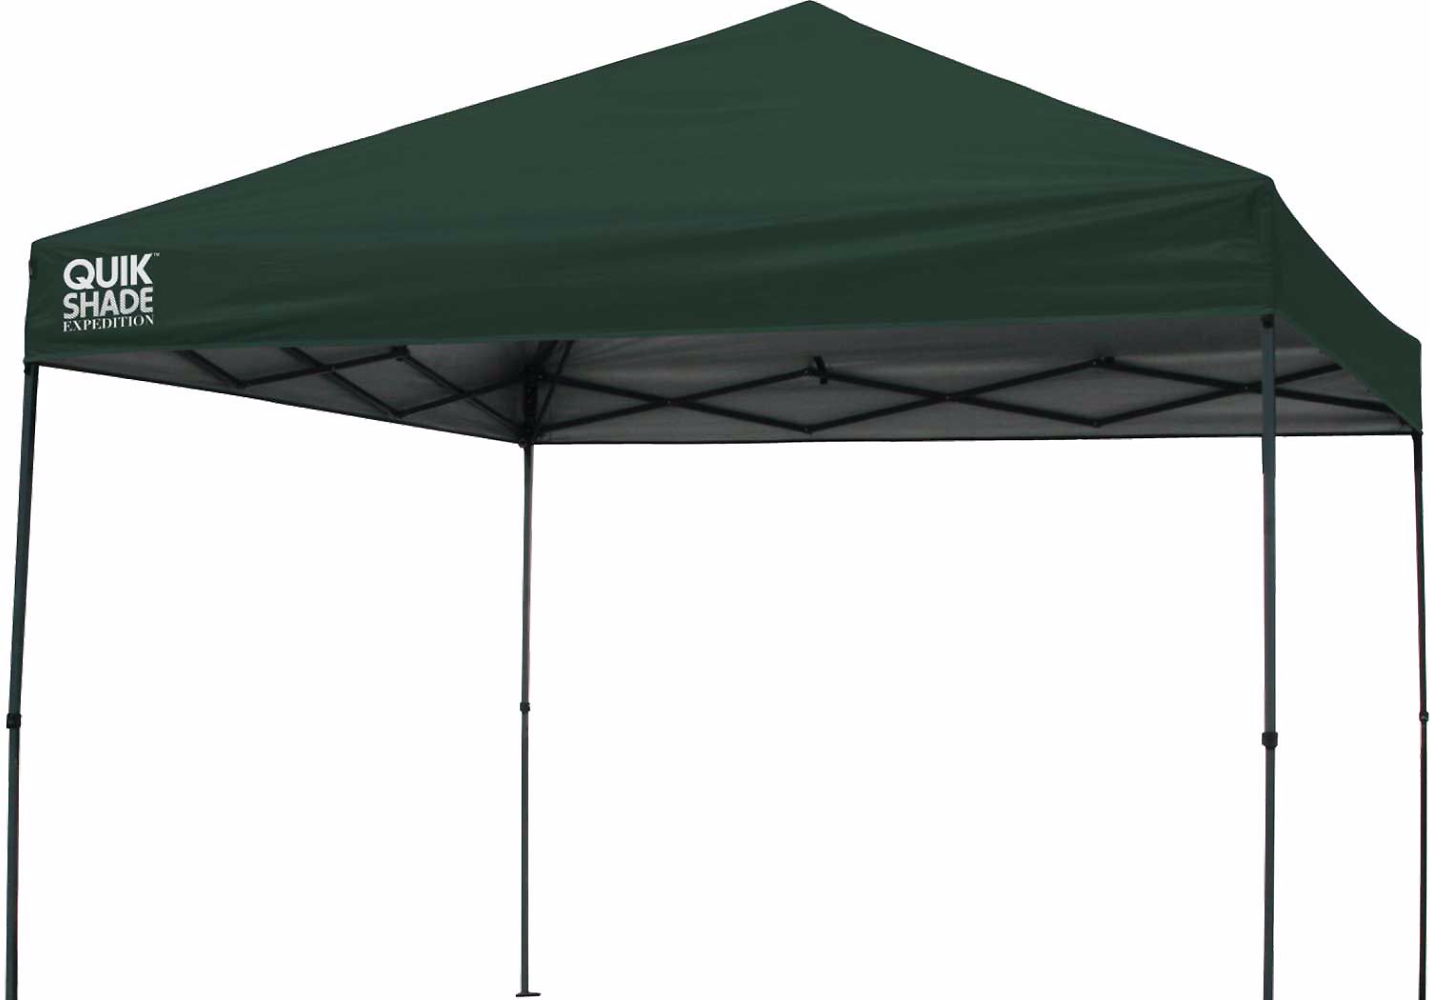 Corrosion Resistant Sturdy Quik Shade Straight Leg Canopy